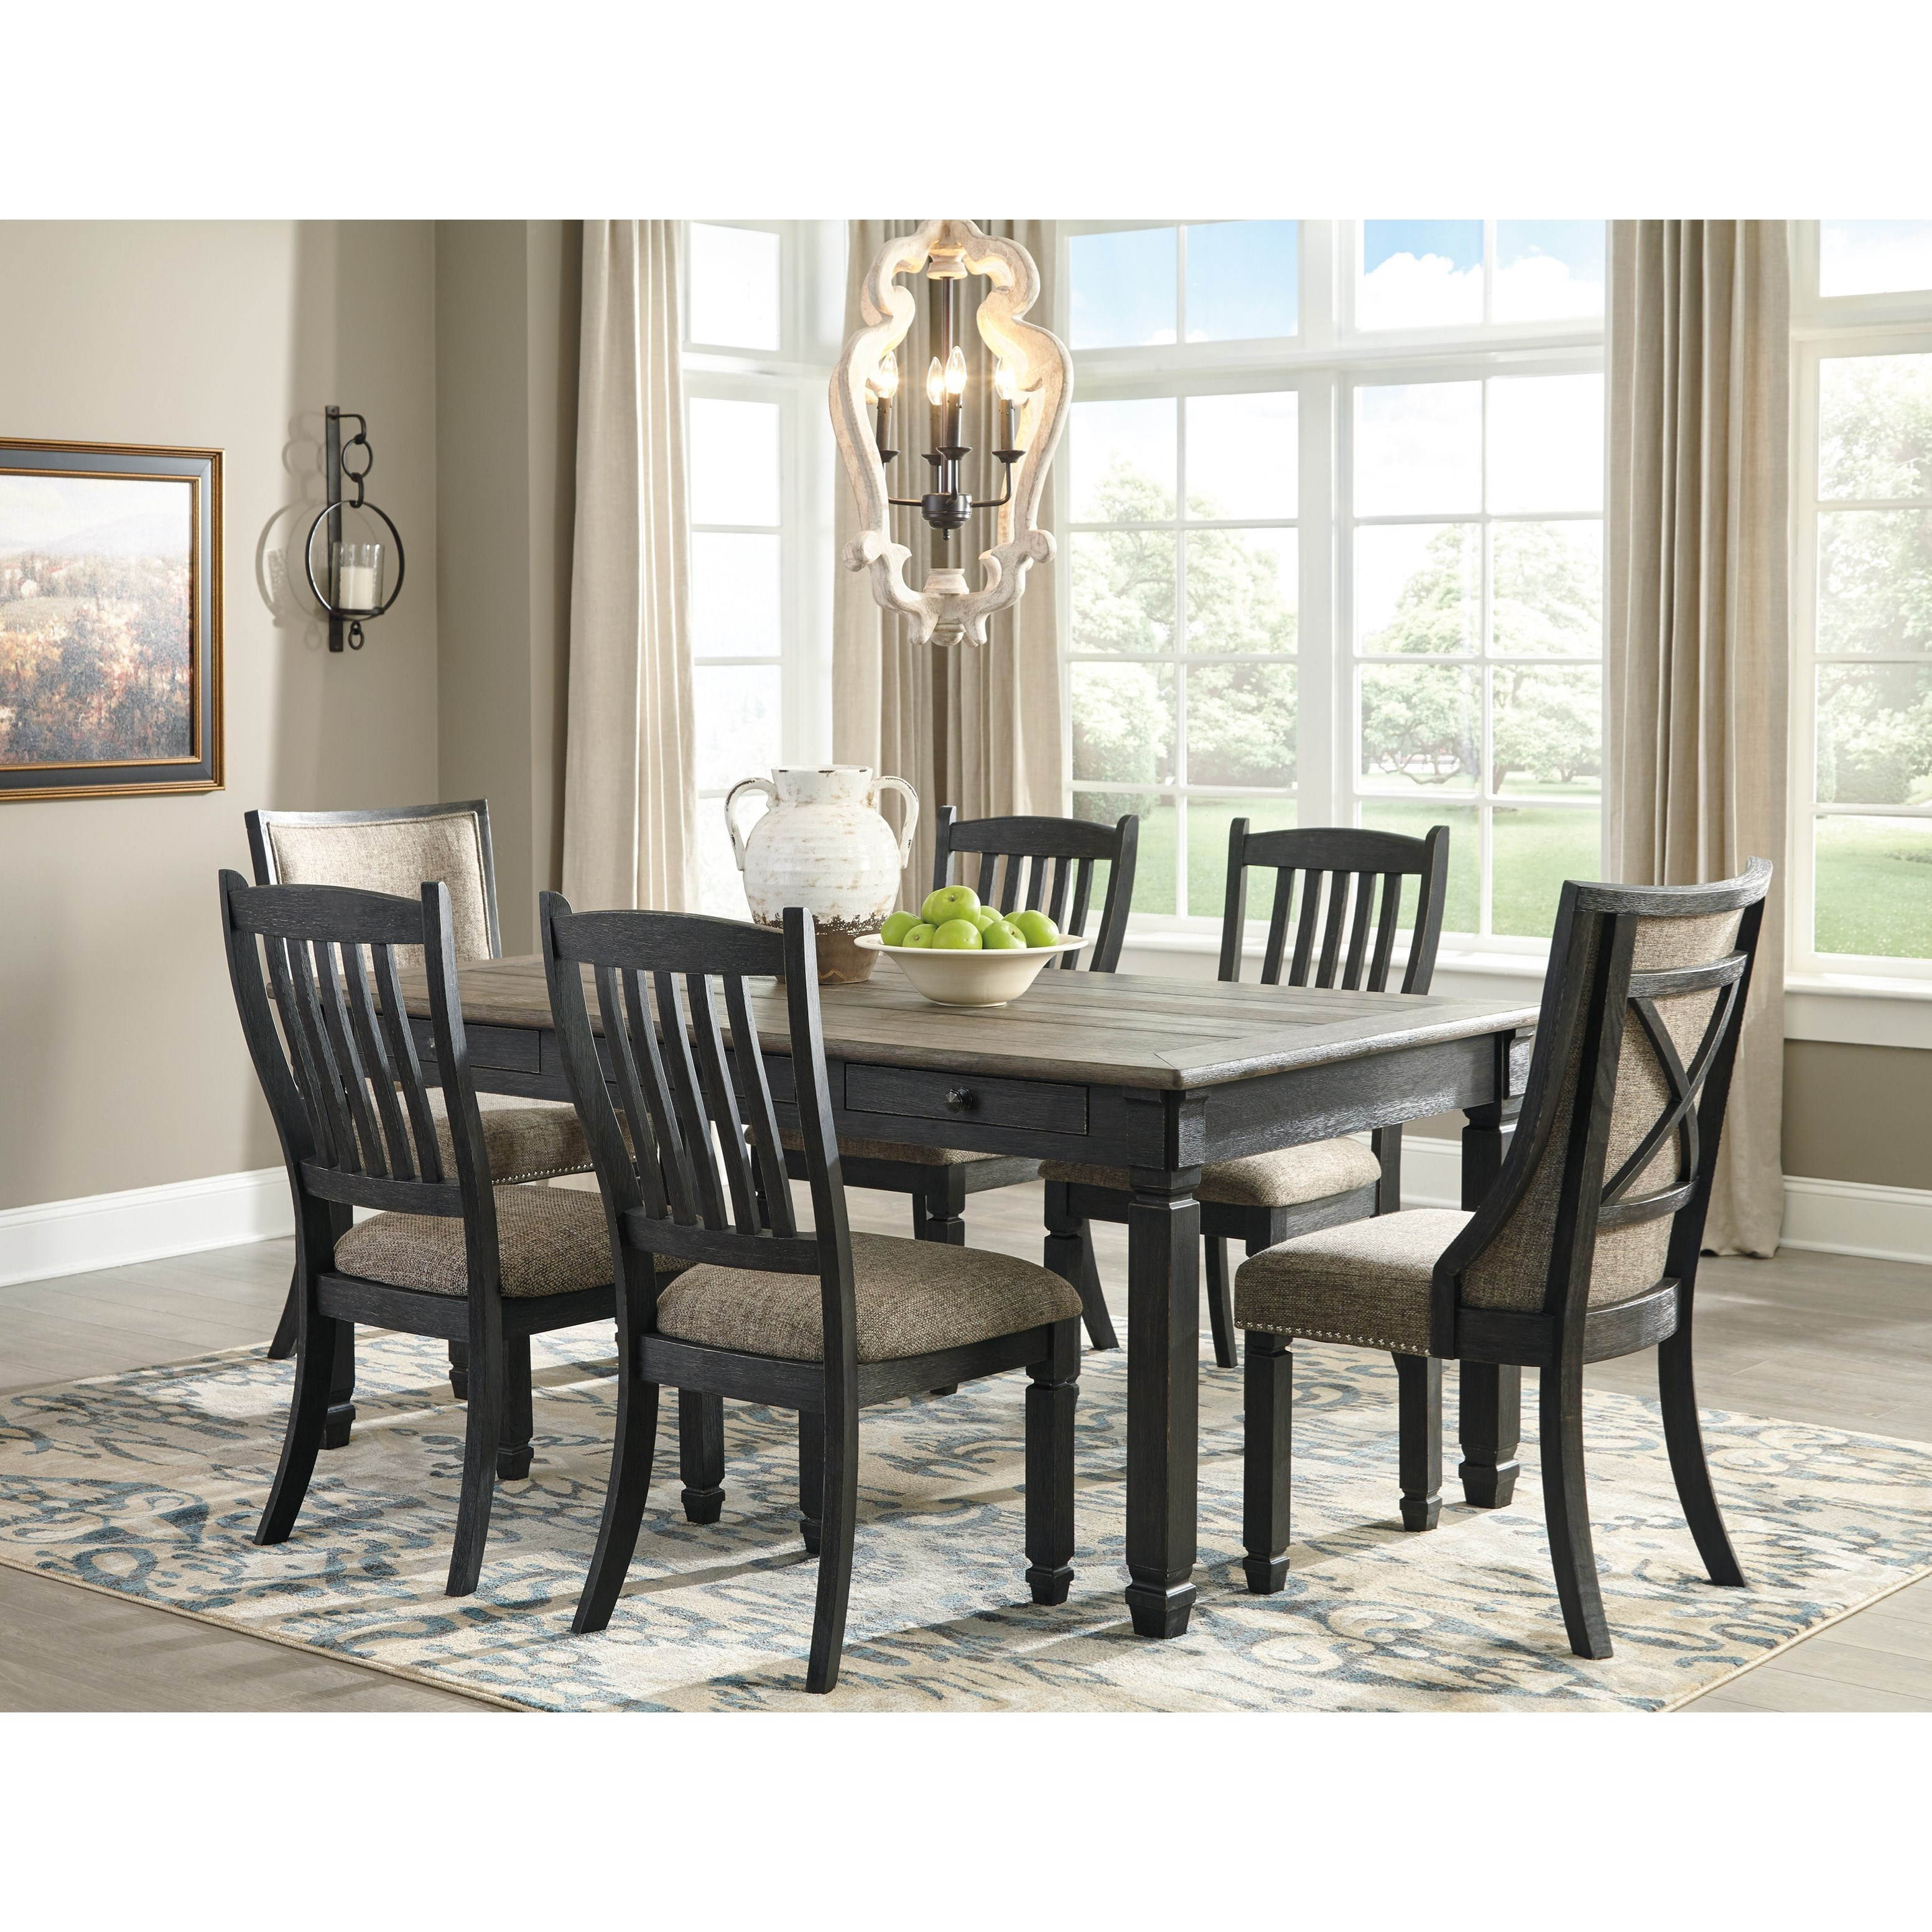 Ashley Signature Design Tyler Creek Relaxed Vintage 7 Piece Table And Chair Set Dunk Bright